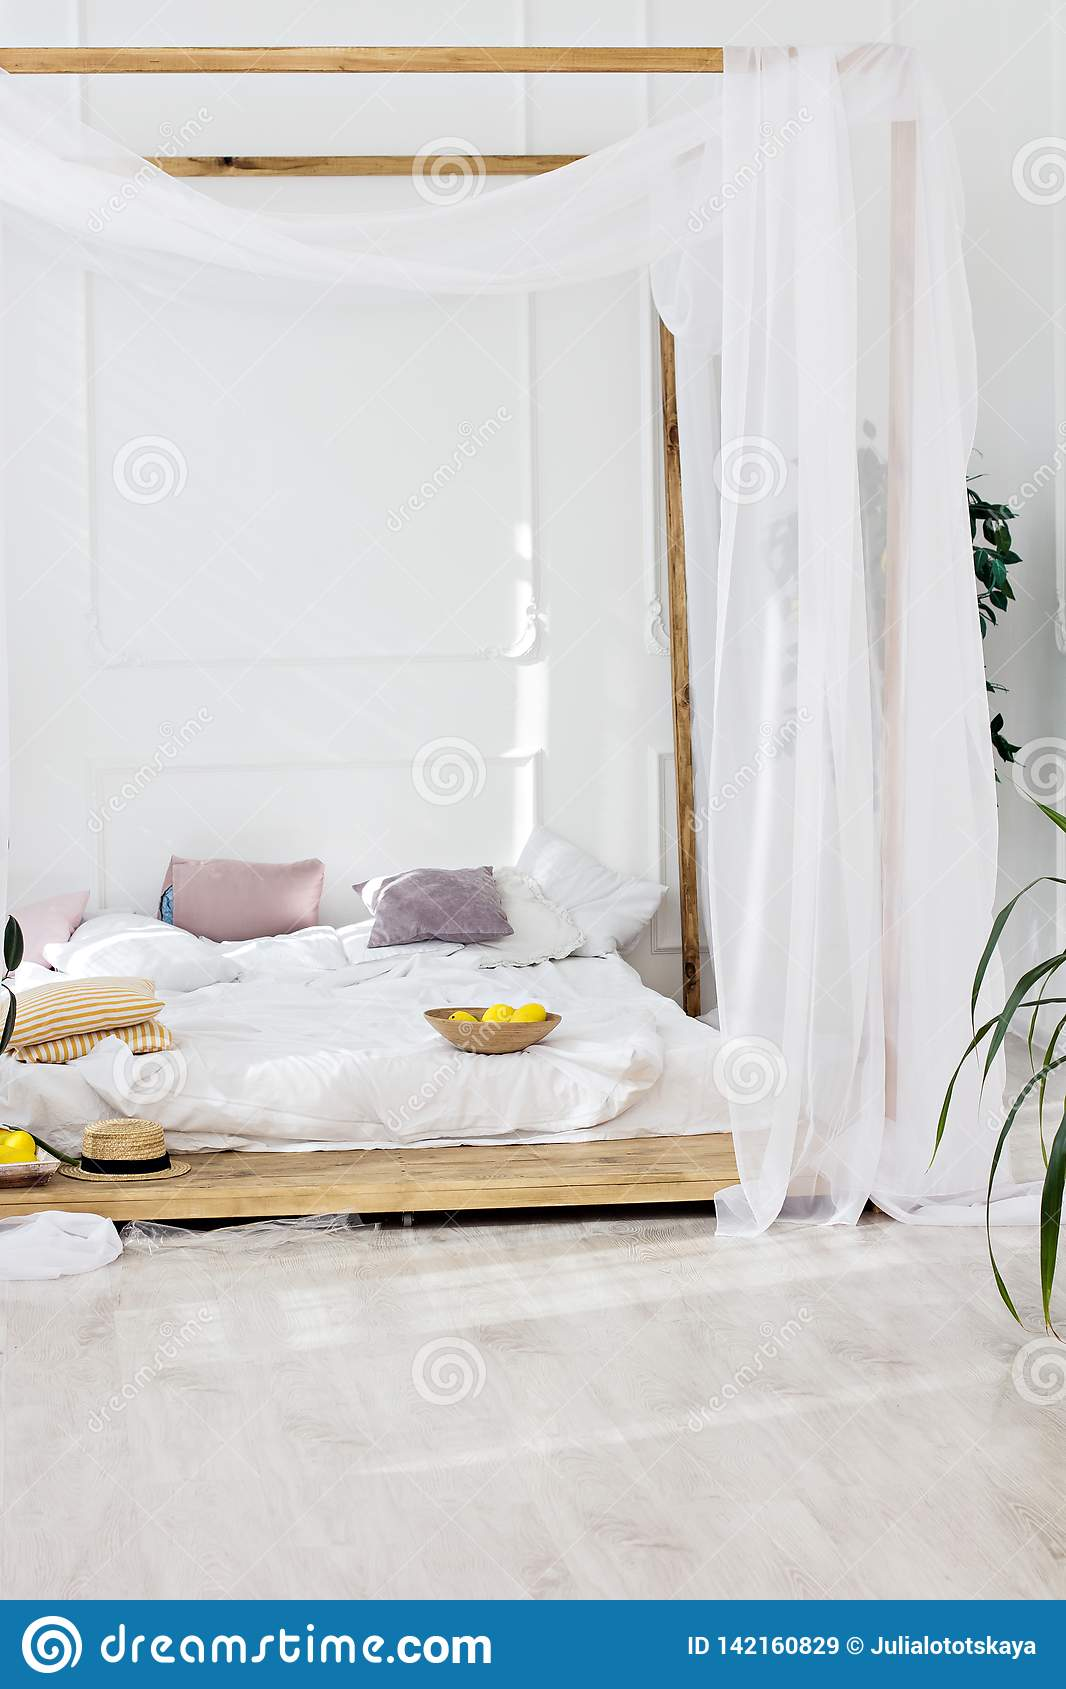 Beautiful Bright Room And A Four Poster Bed Stock Image Image Of Light Bright 142160829